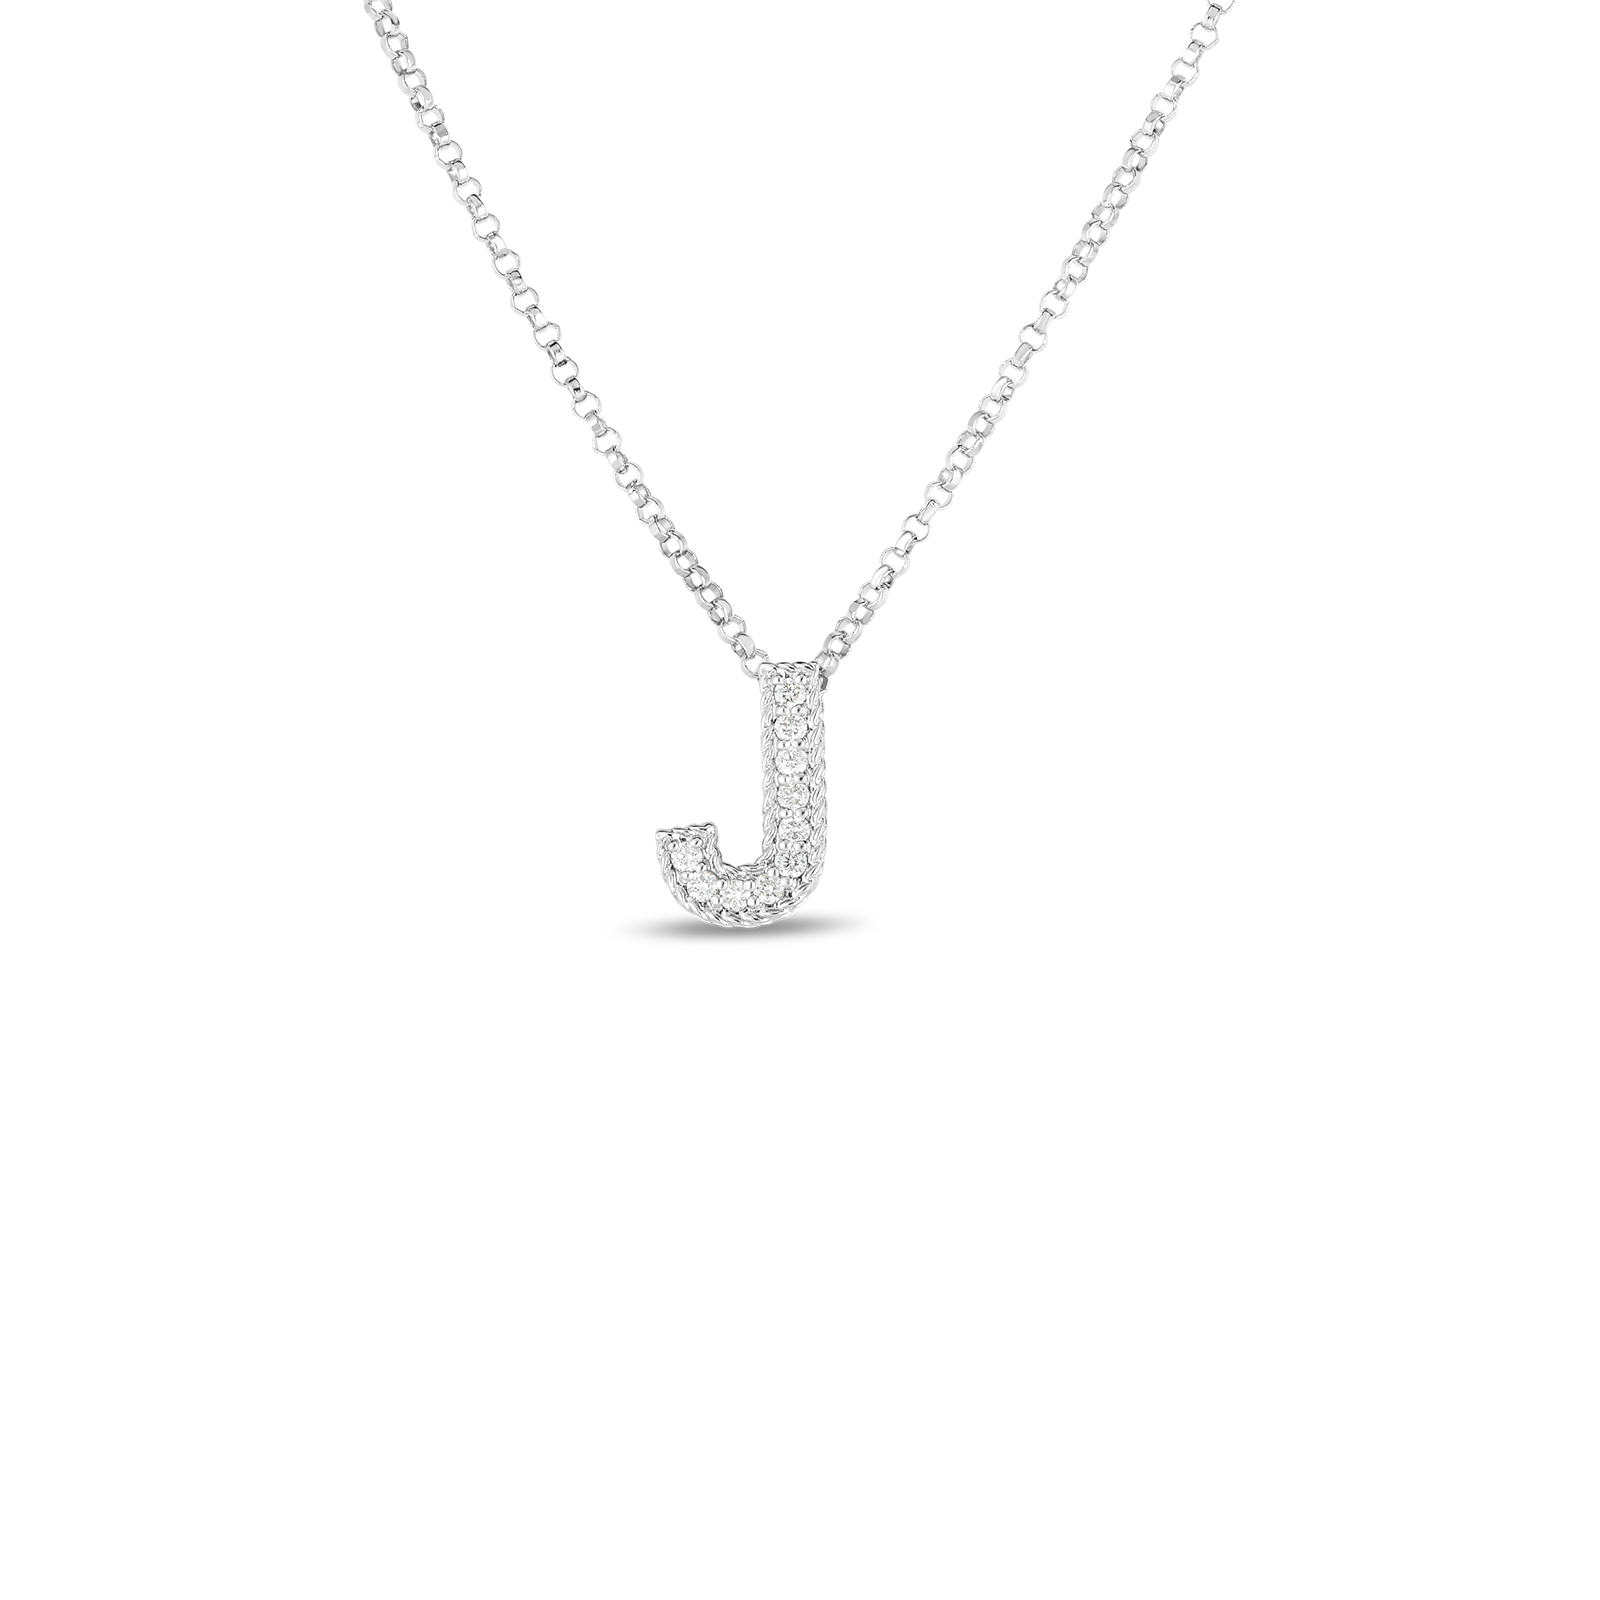 18k Gold & Diamond Princess Initial 'J' Pendant On Chain